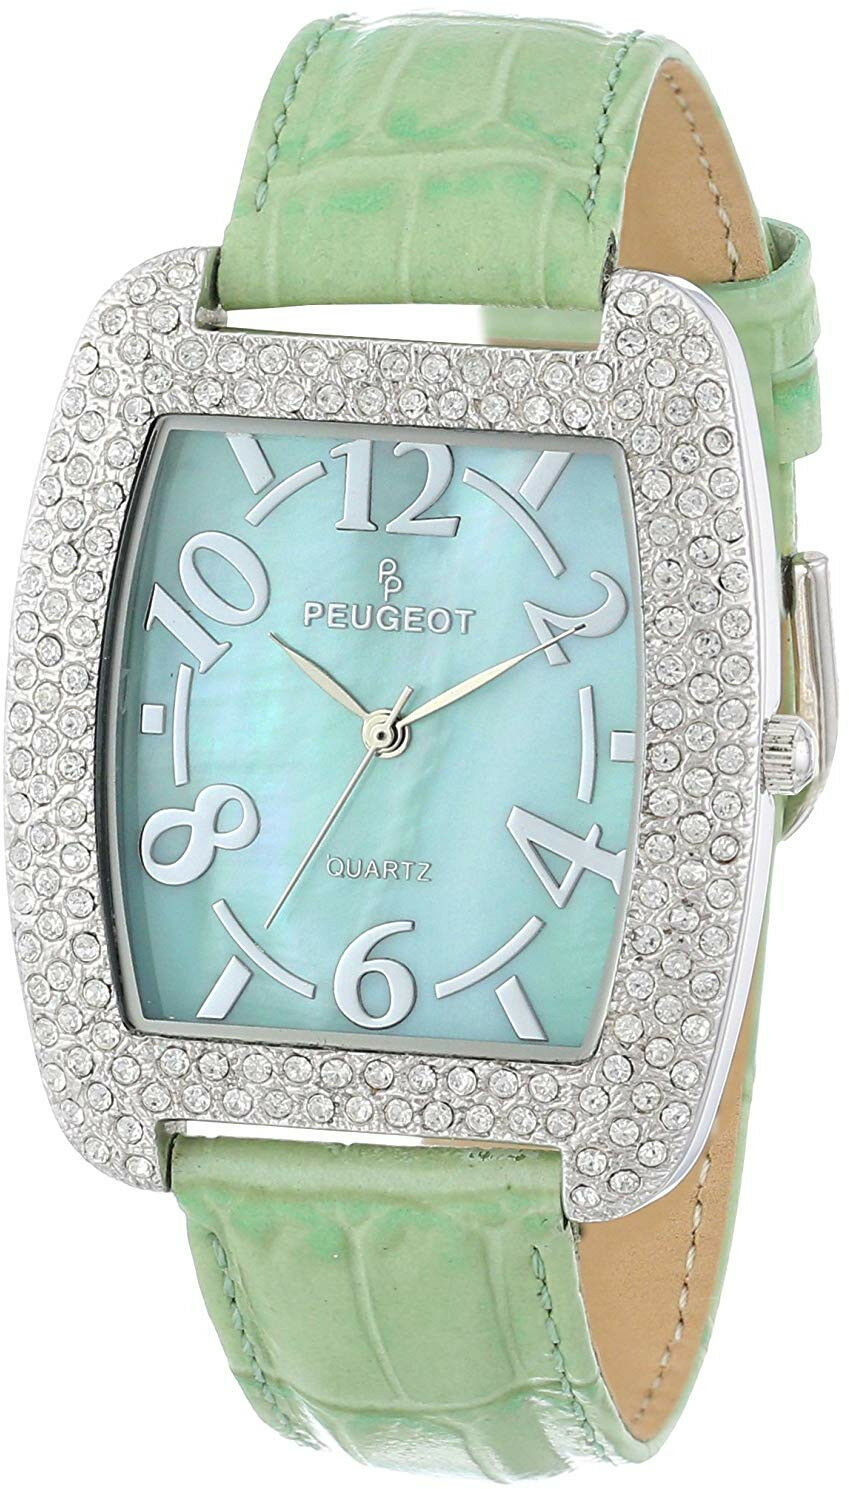 Primary image for Peugeot Womens 342MT Silver-Tone with Crystals Accented Mint Leather Strap